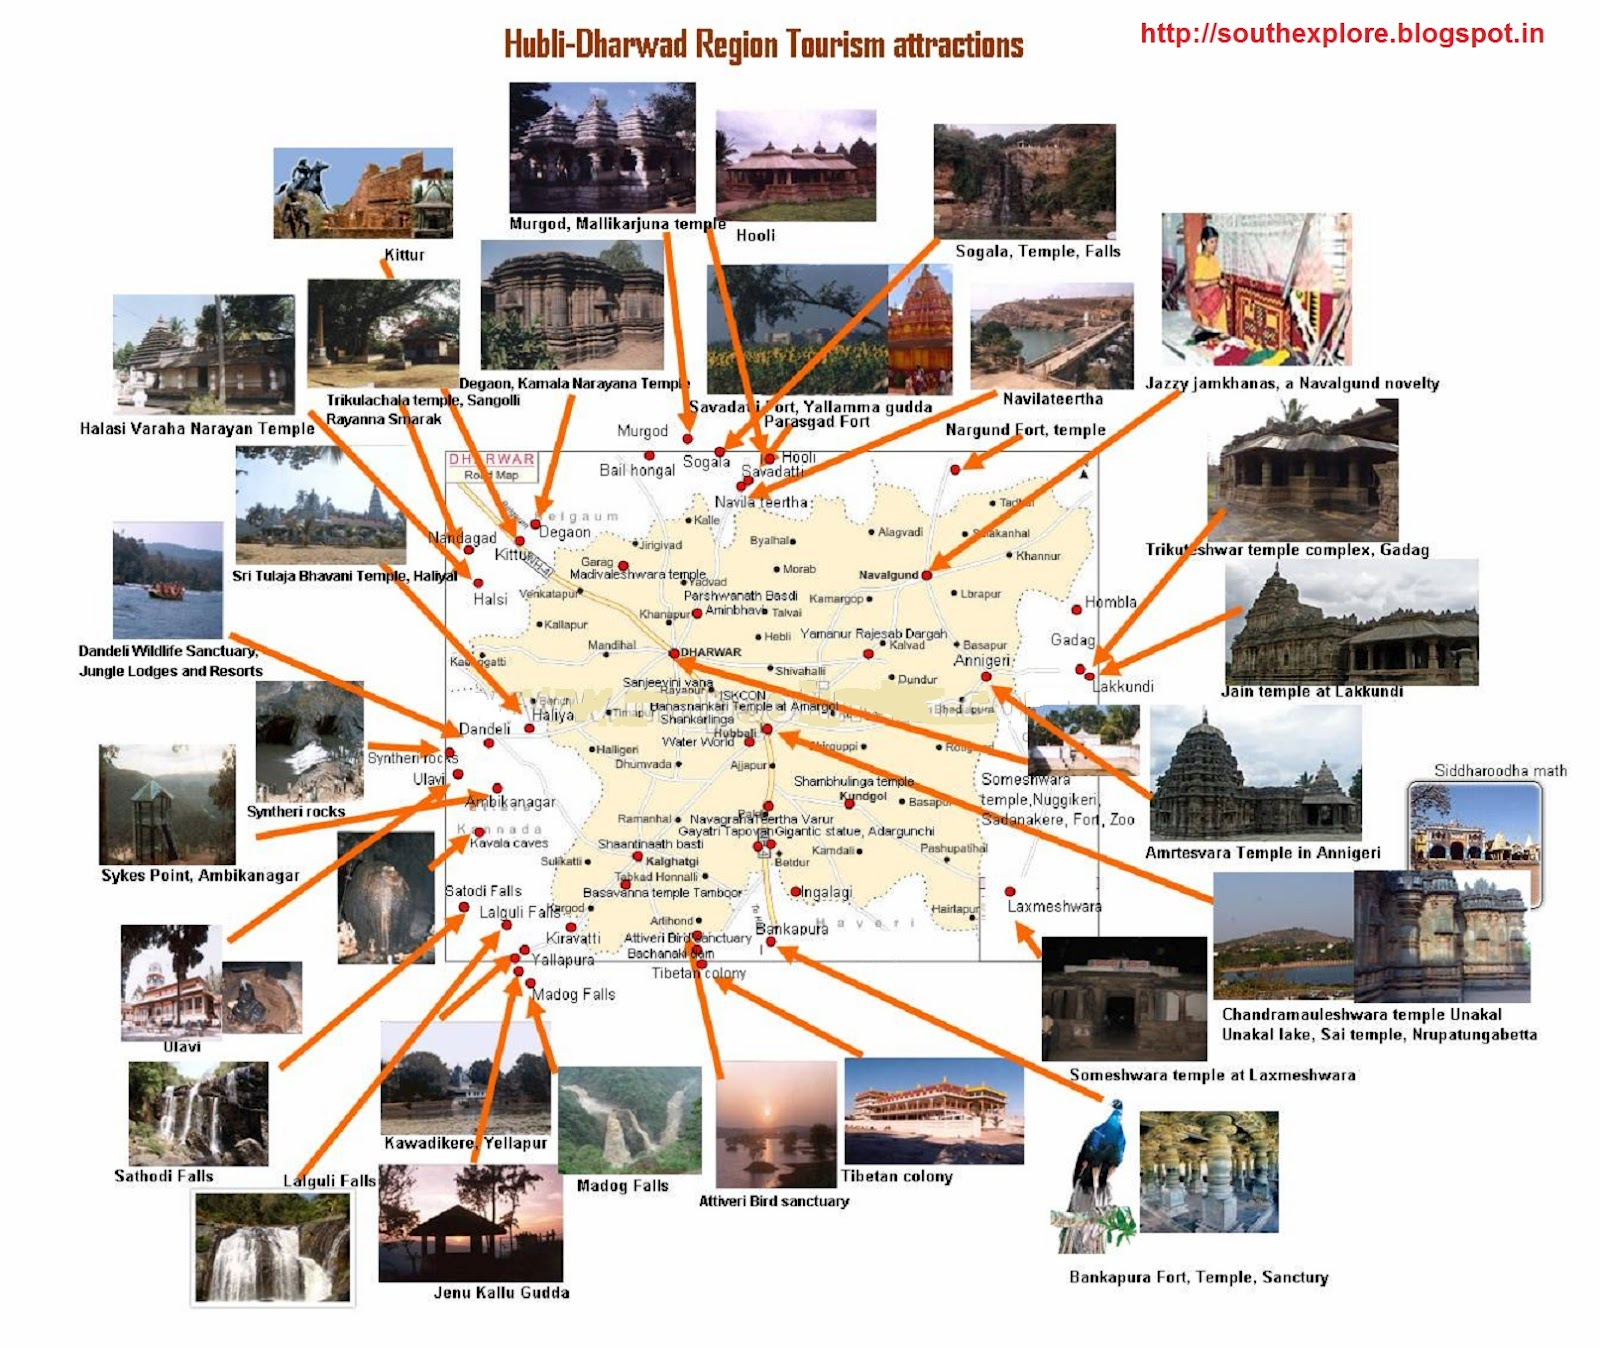 TOURIST PLACES IN HUBLI TOURIST ATTRACTIONS IN HUBLI KARNATAKA – South India Map With Tourist Places